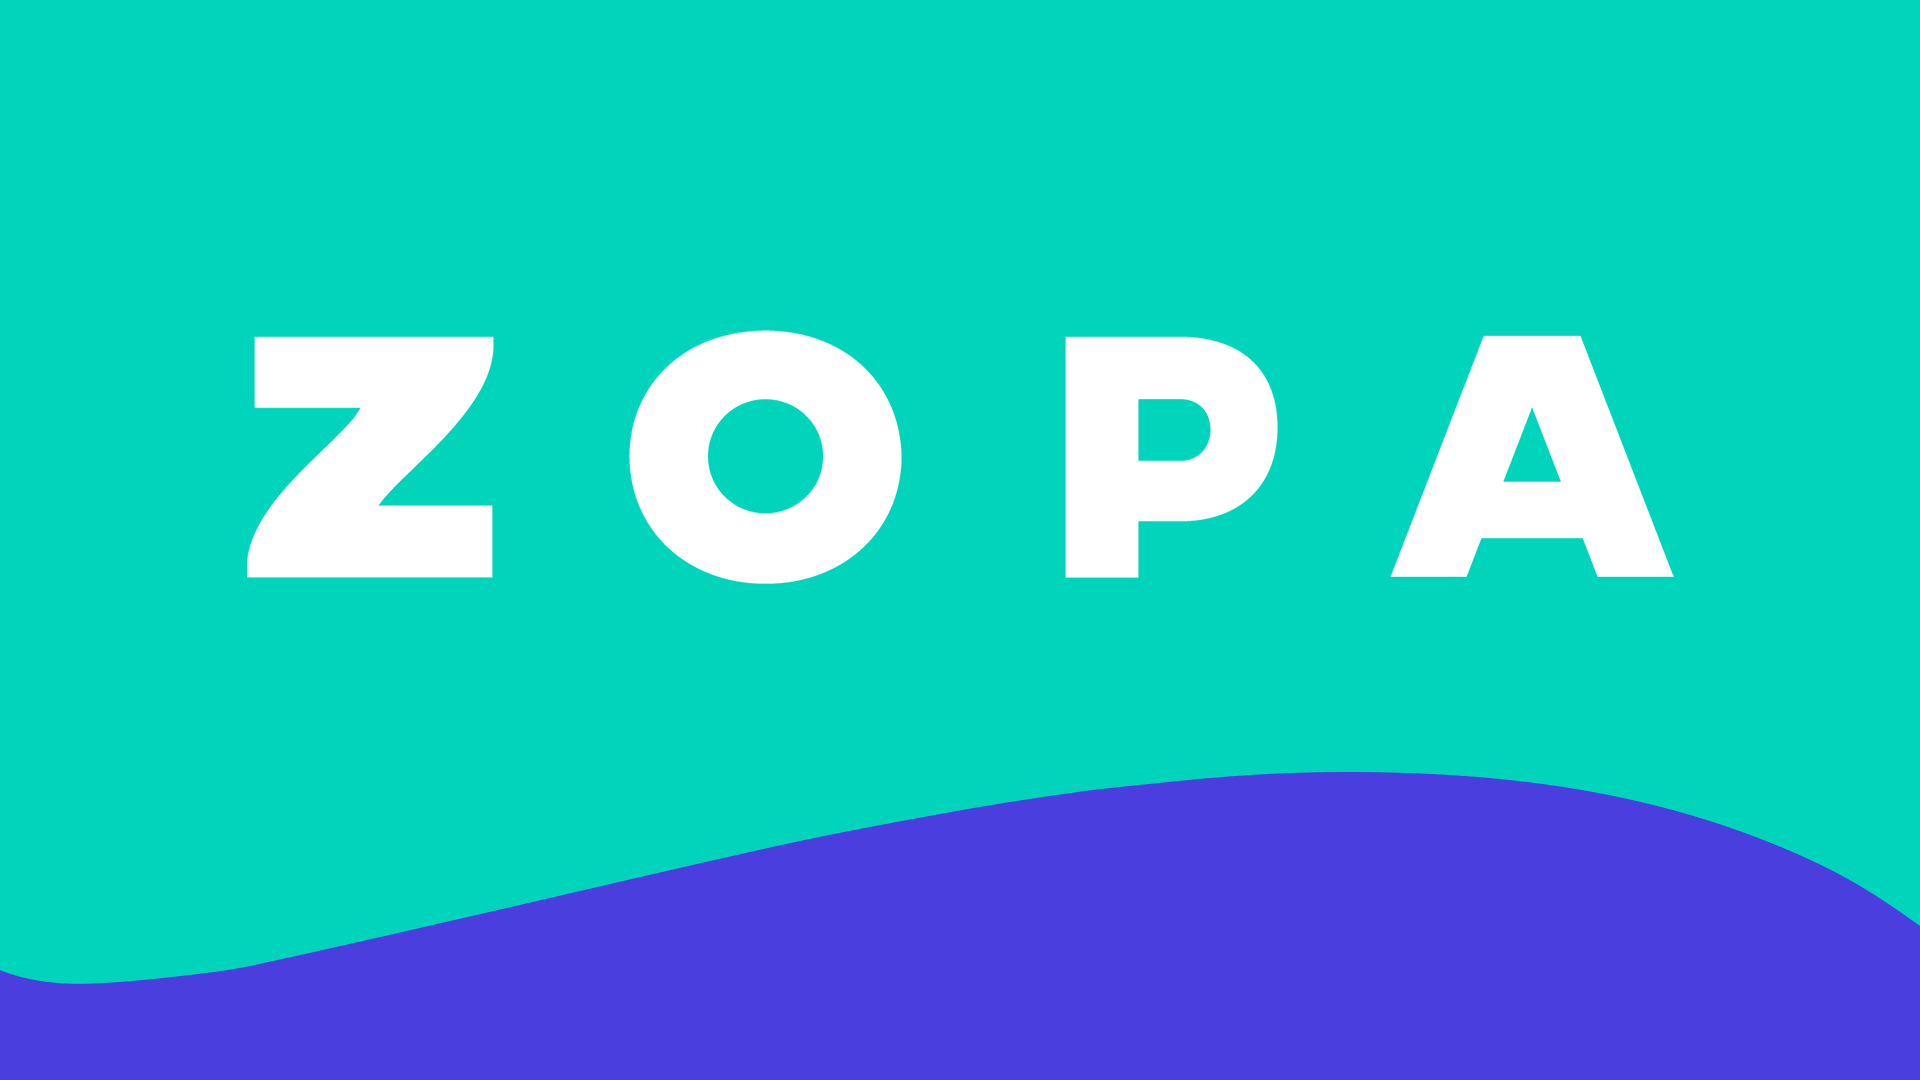 zopa-raises-gbp220-million-to-build-the-uk-s-best-bank-for-borrowing-and-savings